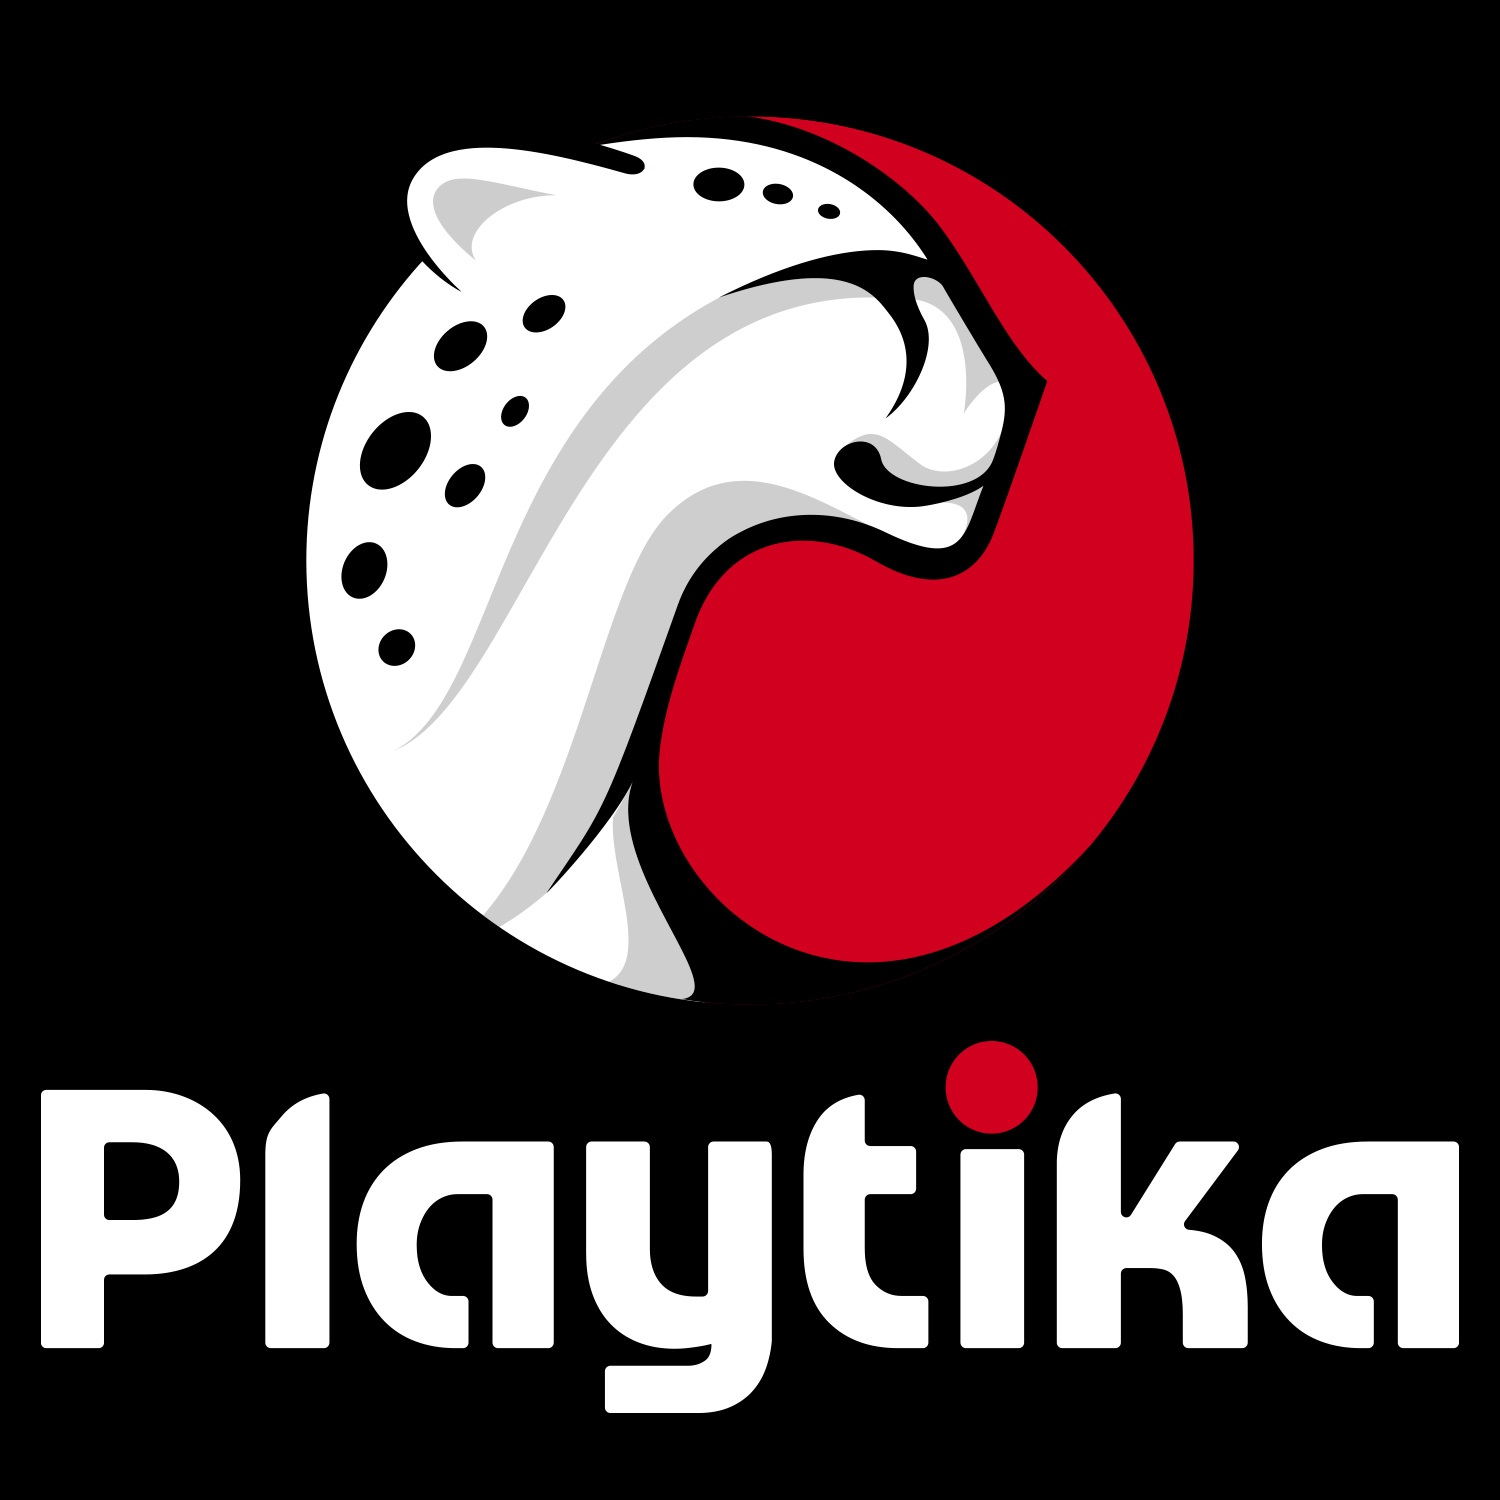 Playtika Santa Monica